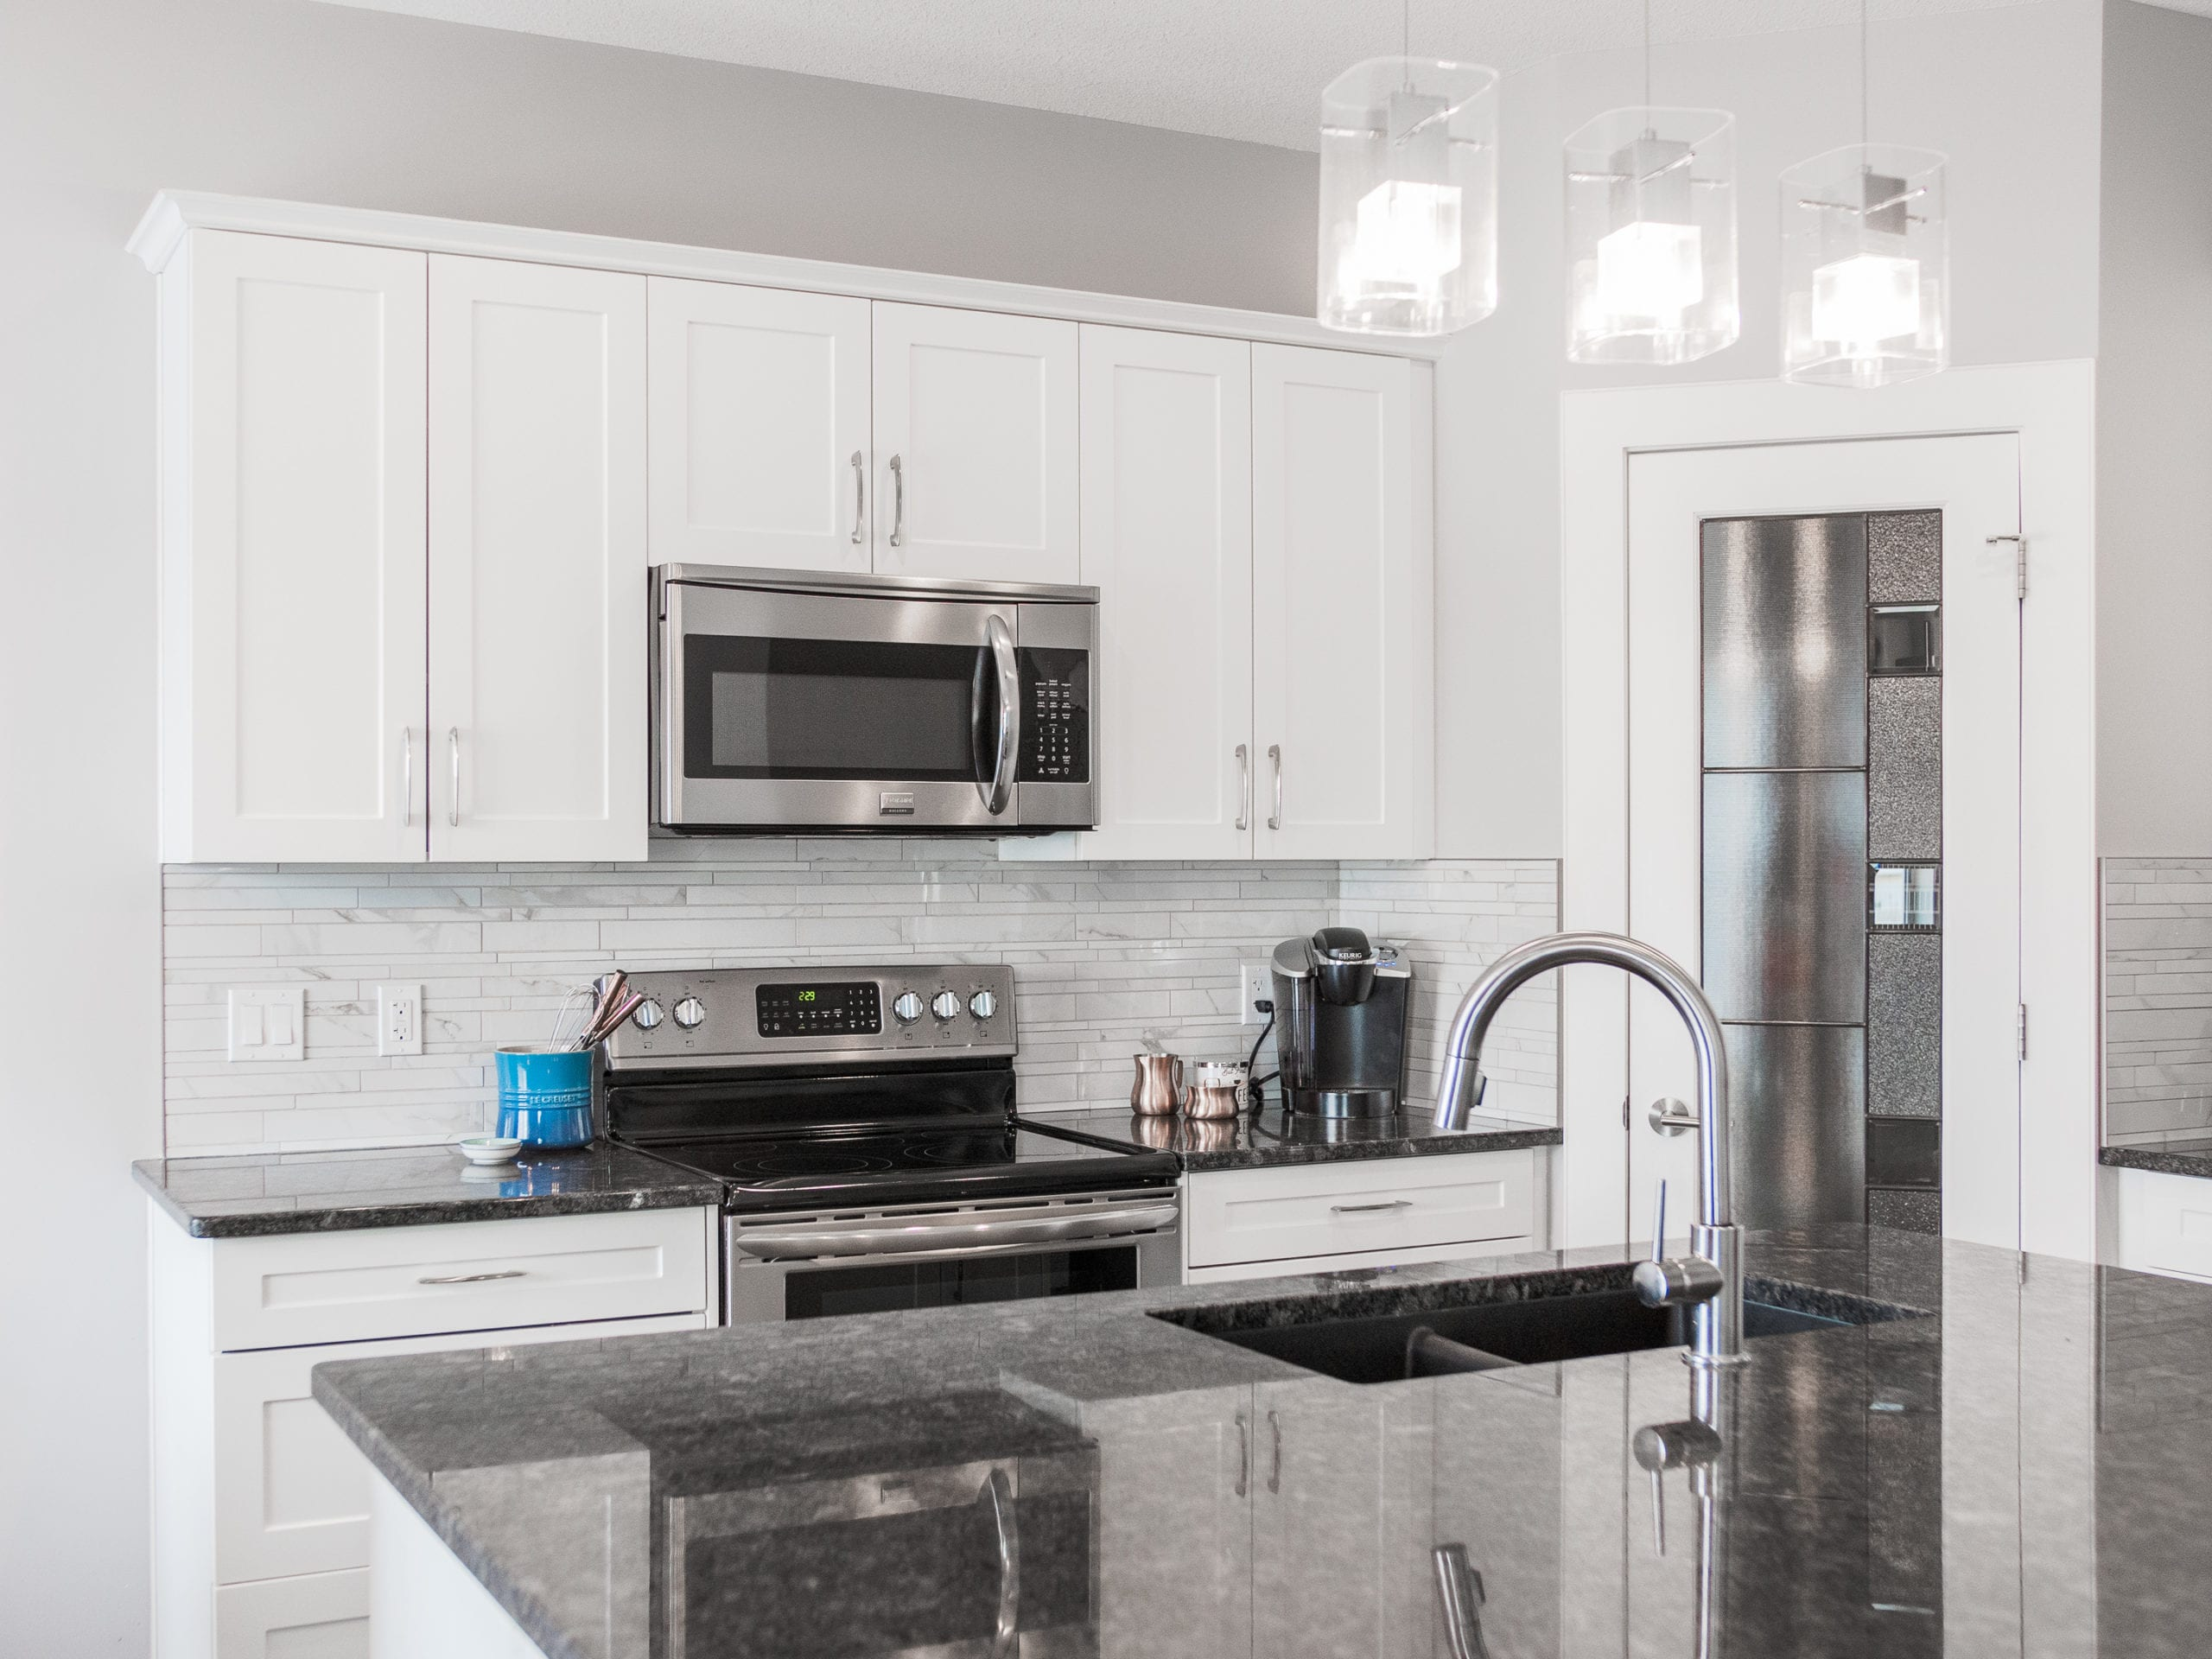 Hello Gorgeous - 1306 Kings Heights Way SE, Airdrie AB. - Tara Molina Real Estate (12 of 53)